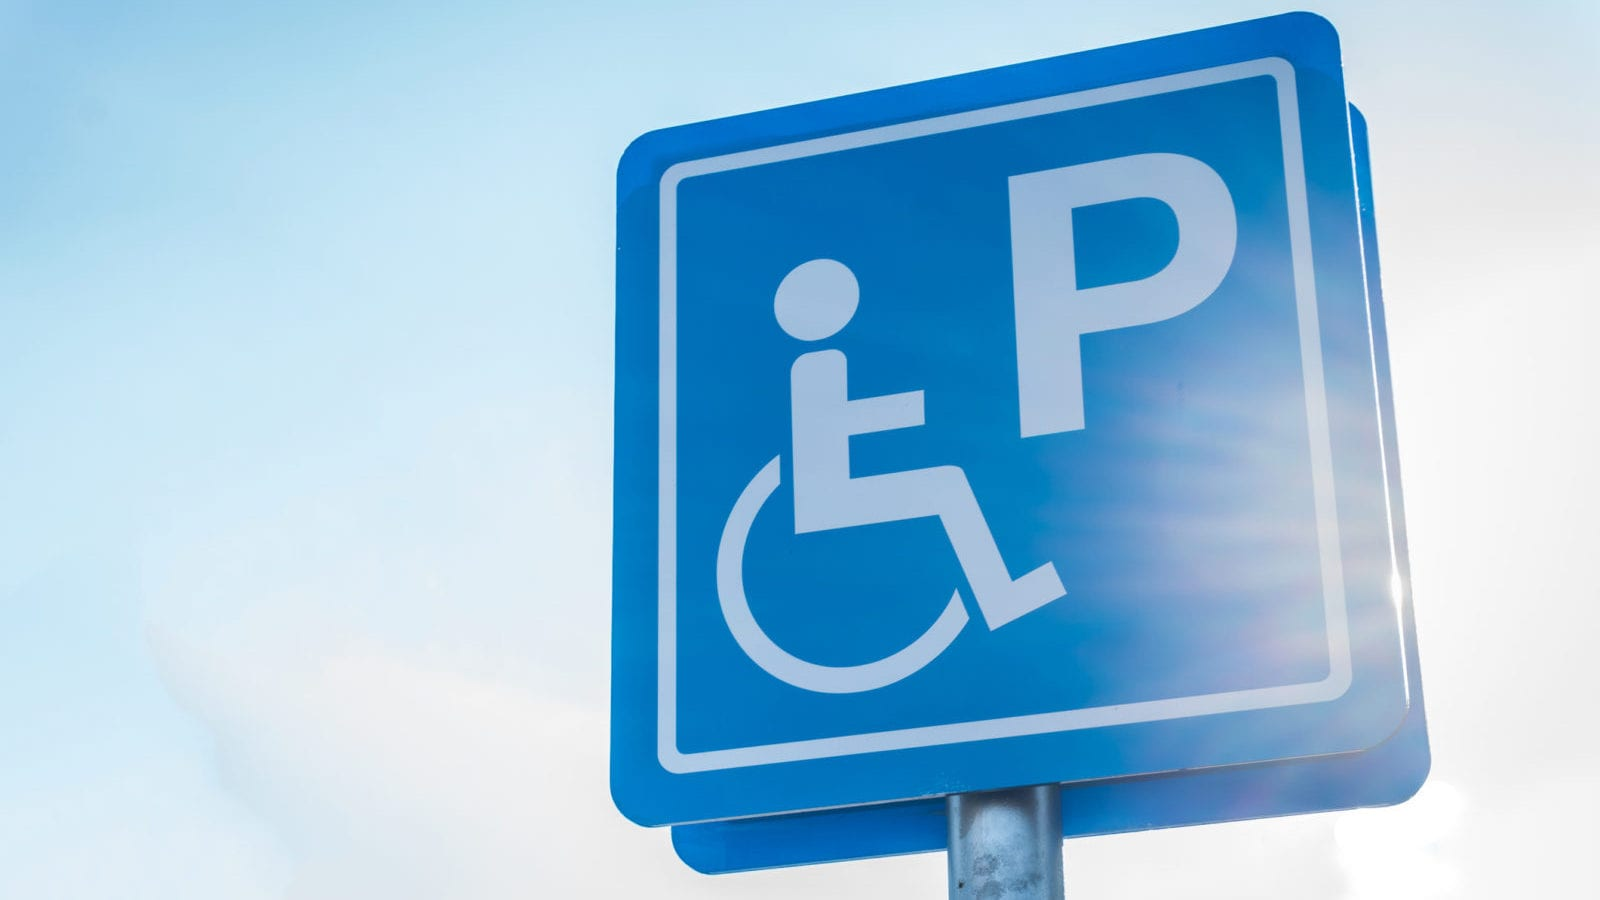 Blue Handicapped Parking Sign